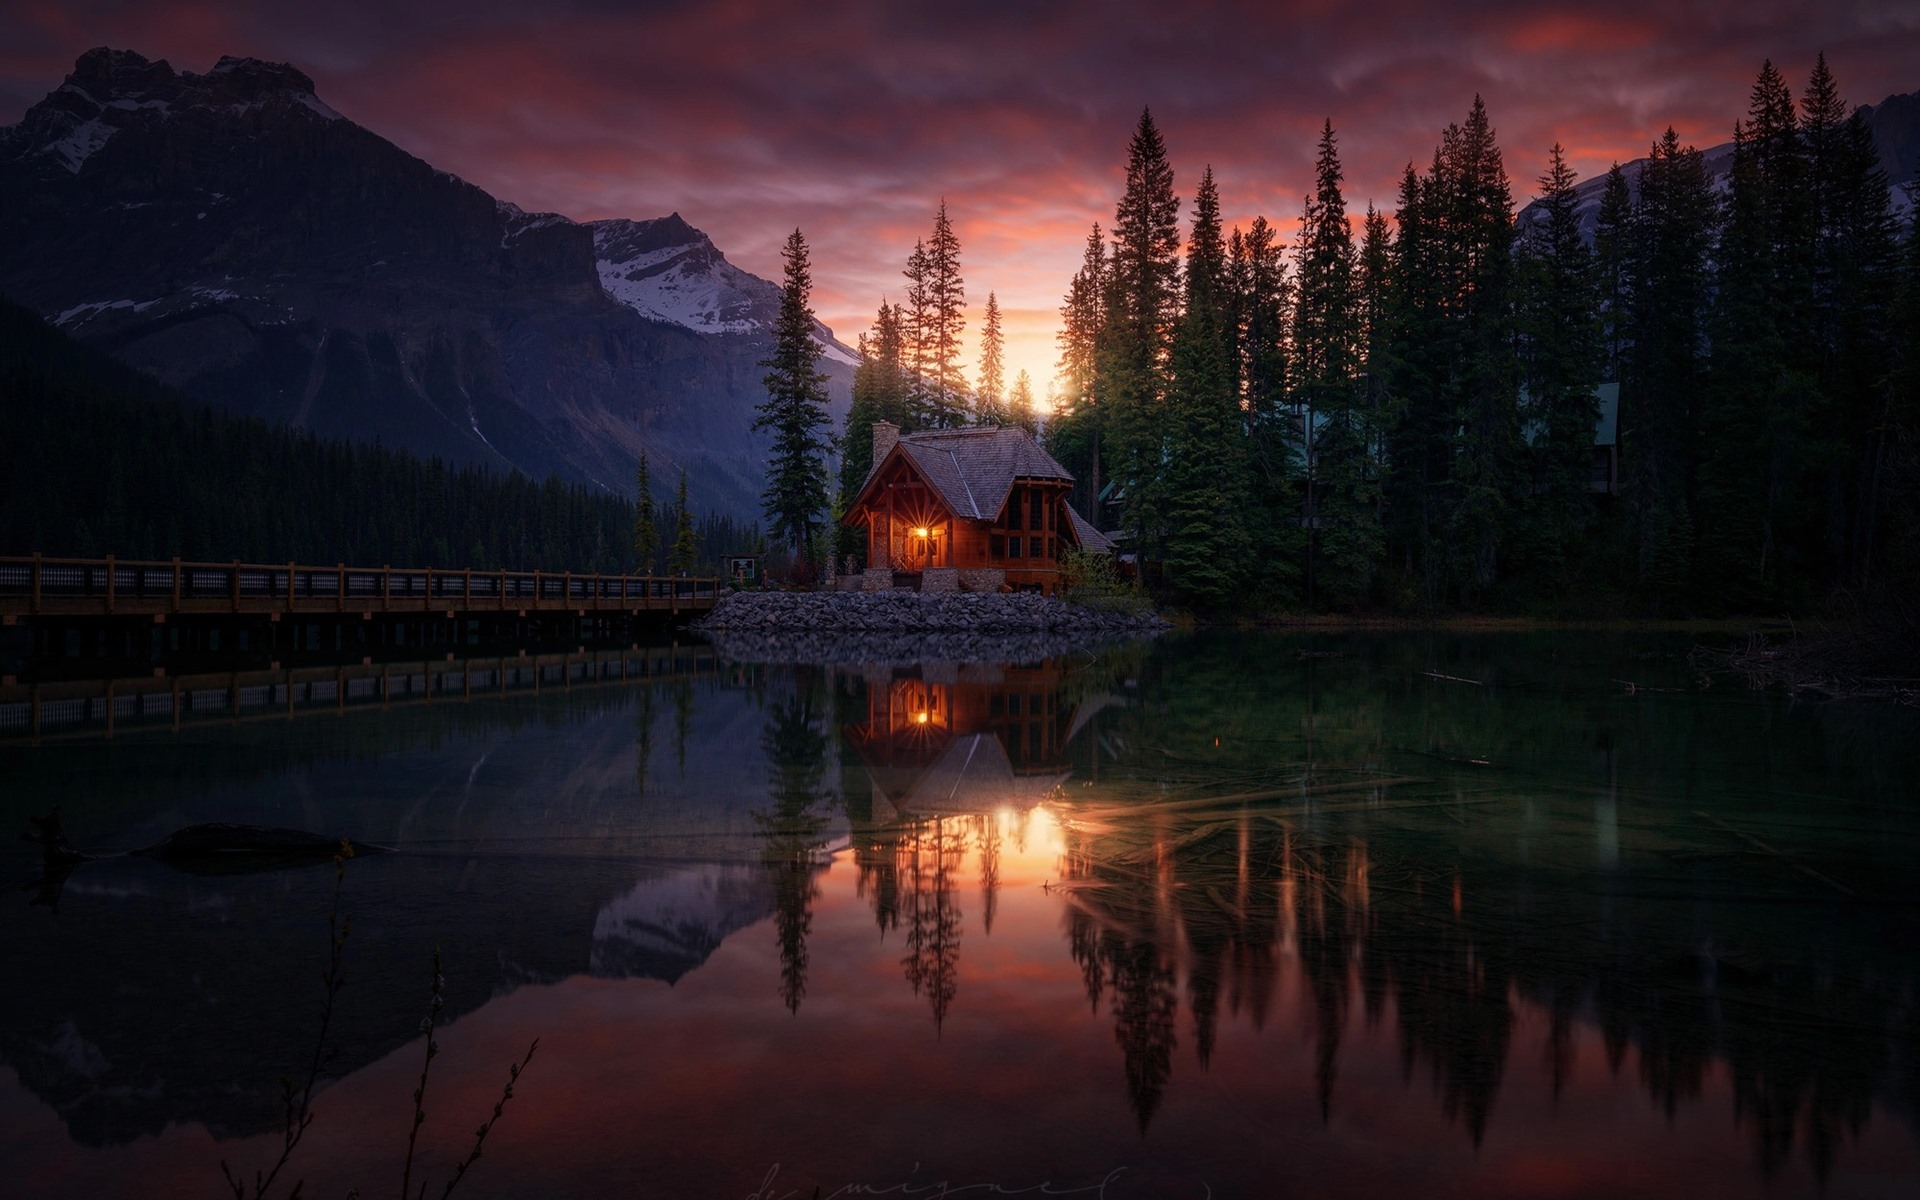 Wallpaper Forest Lake House Sunset Dusk 1920x1440 Hd Picture Image